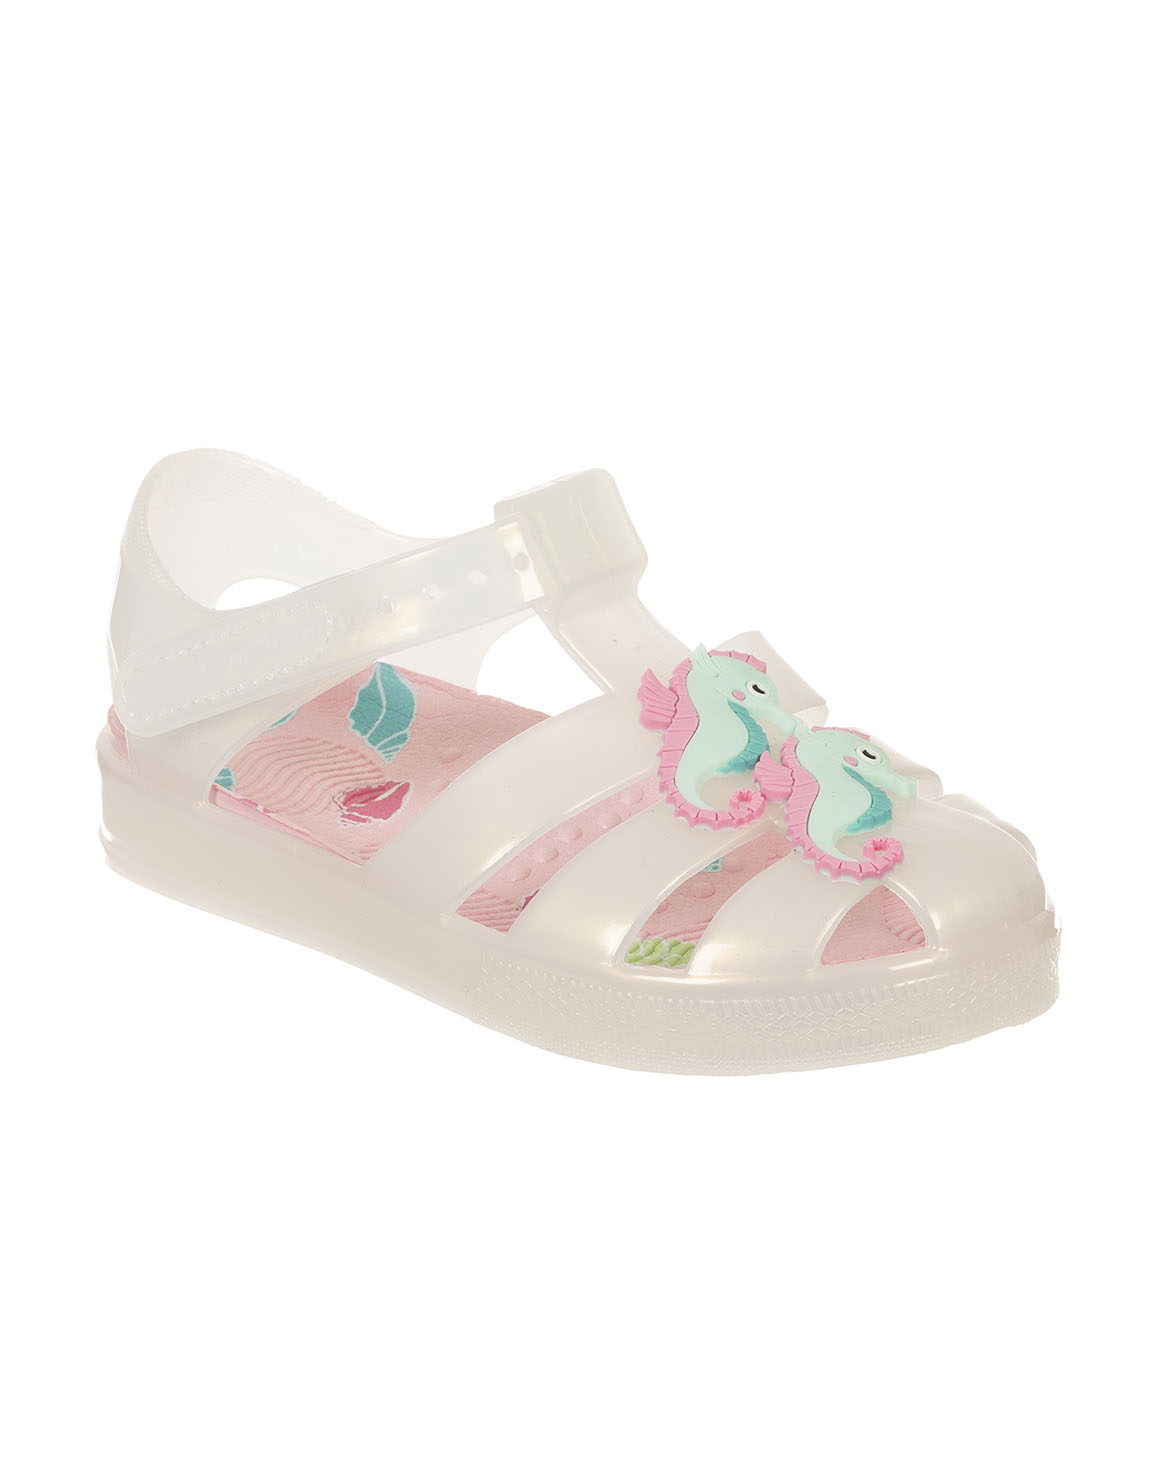 Pearlised Jelly Sandals (Size 4-13